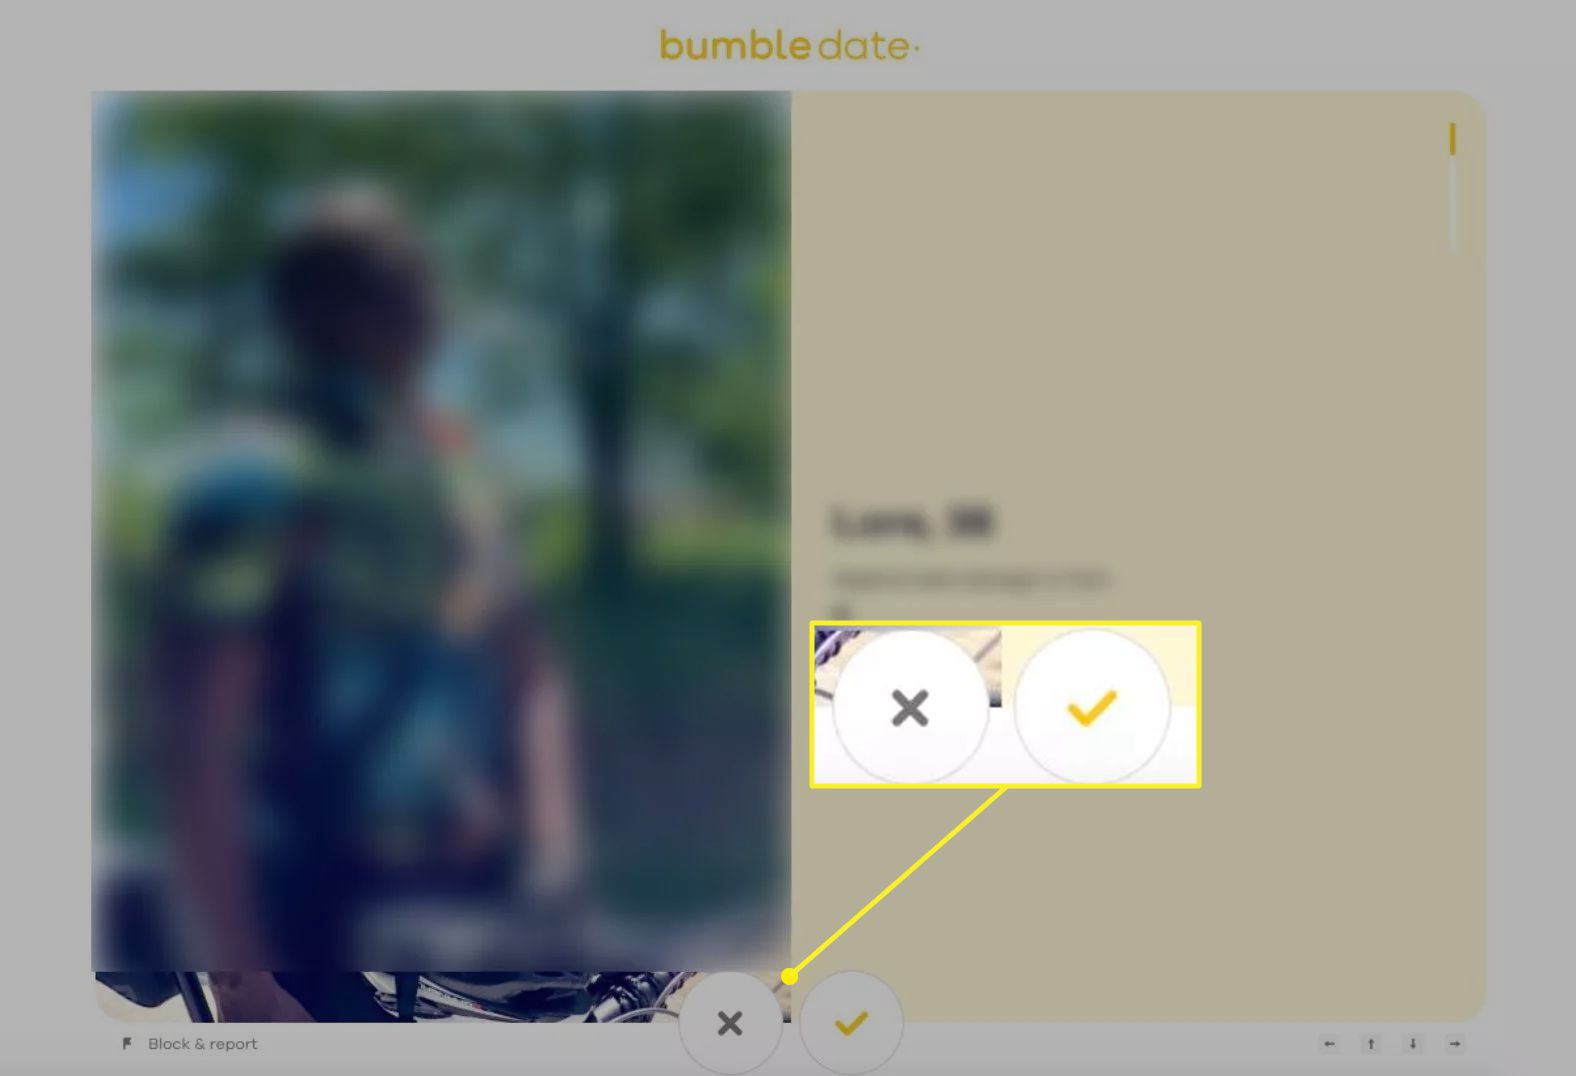 Bumble.com showing the buttons to pass on or like a match